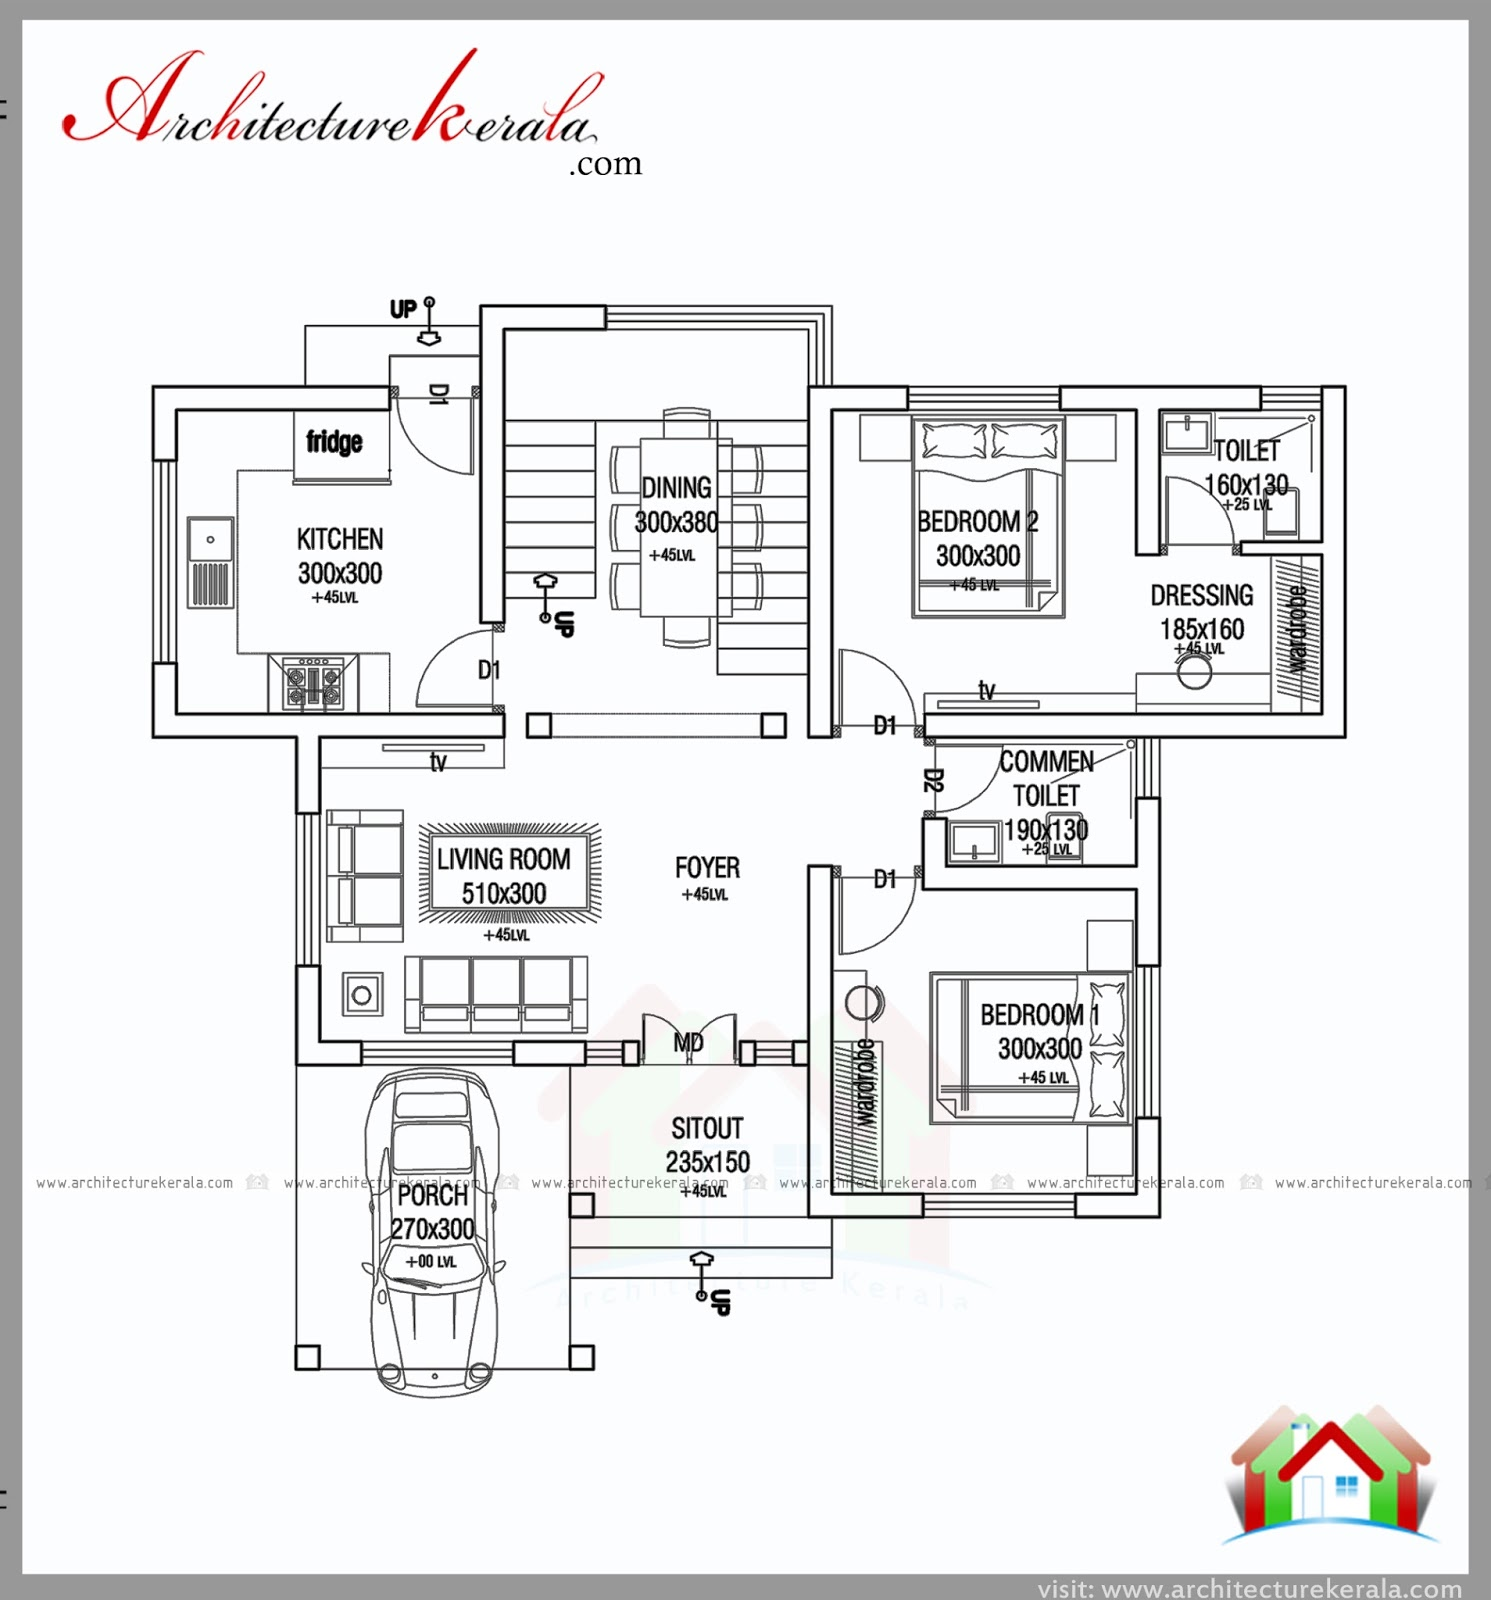 1000 square feet 2 bed house plan and elevation 1000 square feet house plan india